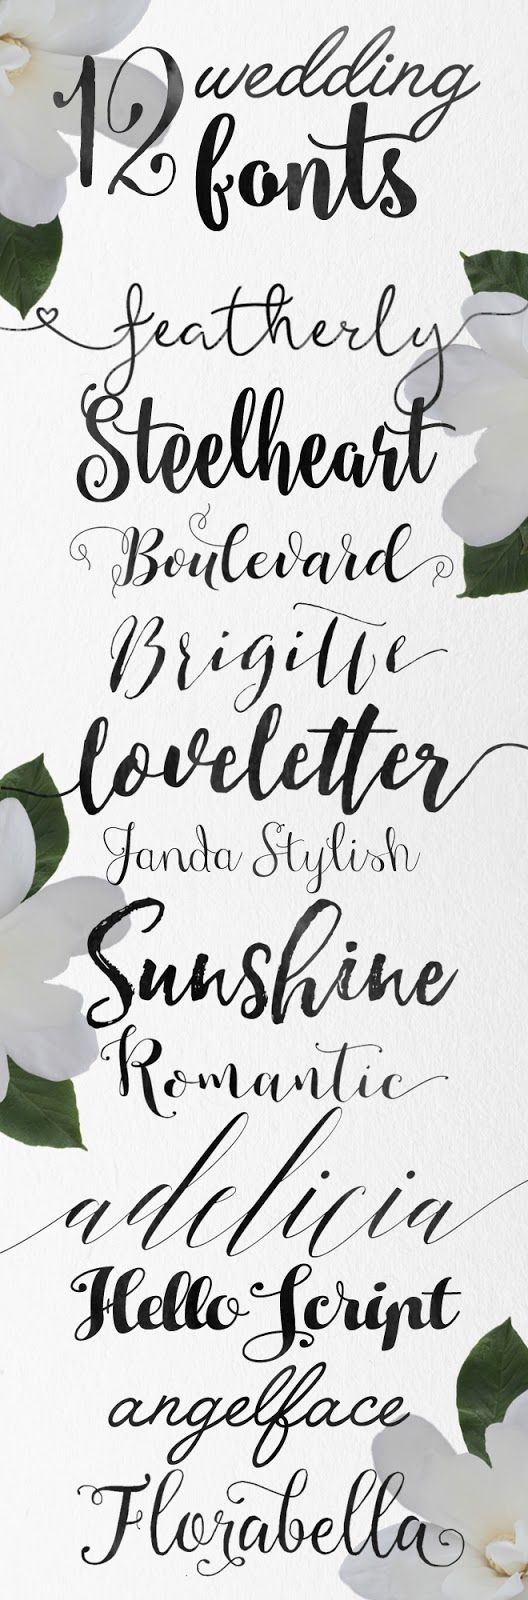 modern calligraphy wedding fonts, some free